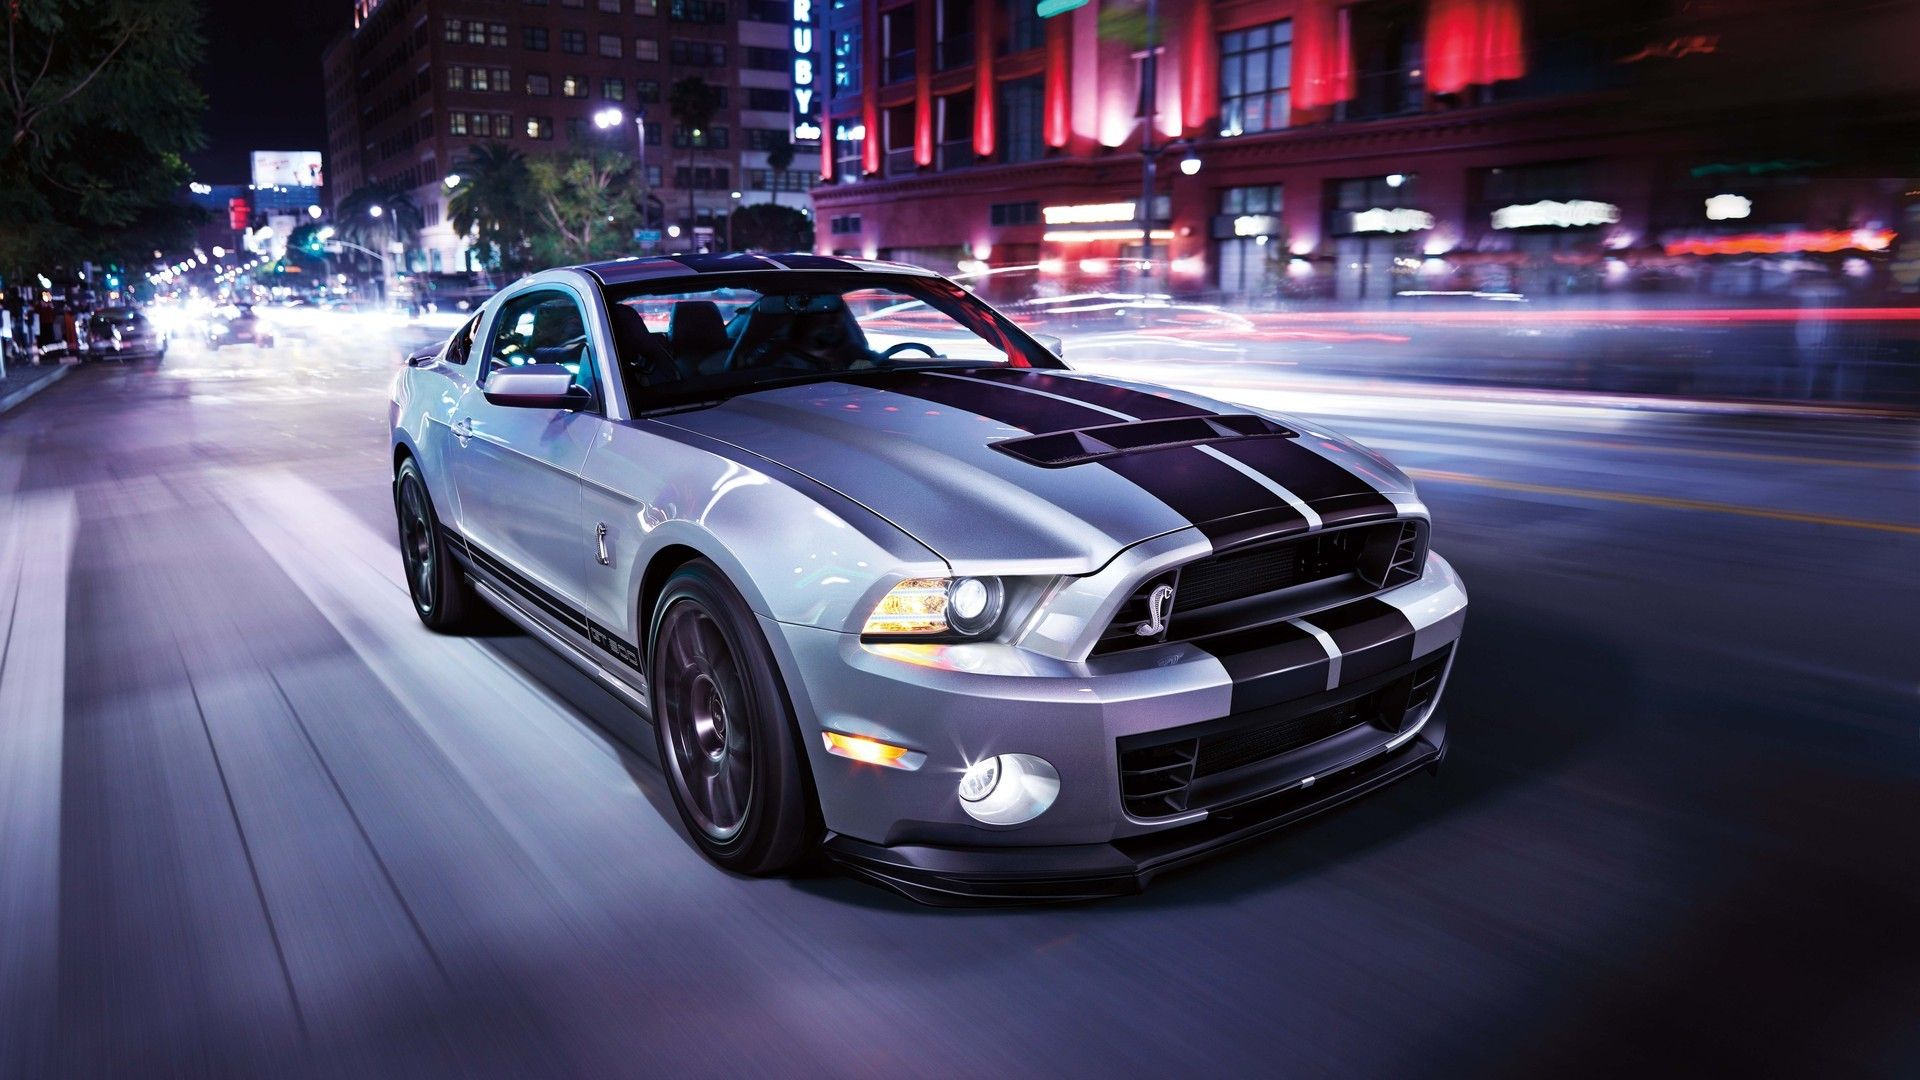 hd wallpapers ford mustang | reiseziele | pinterest | ford mustang